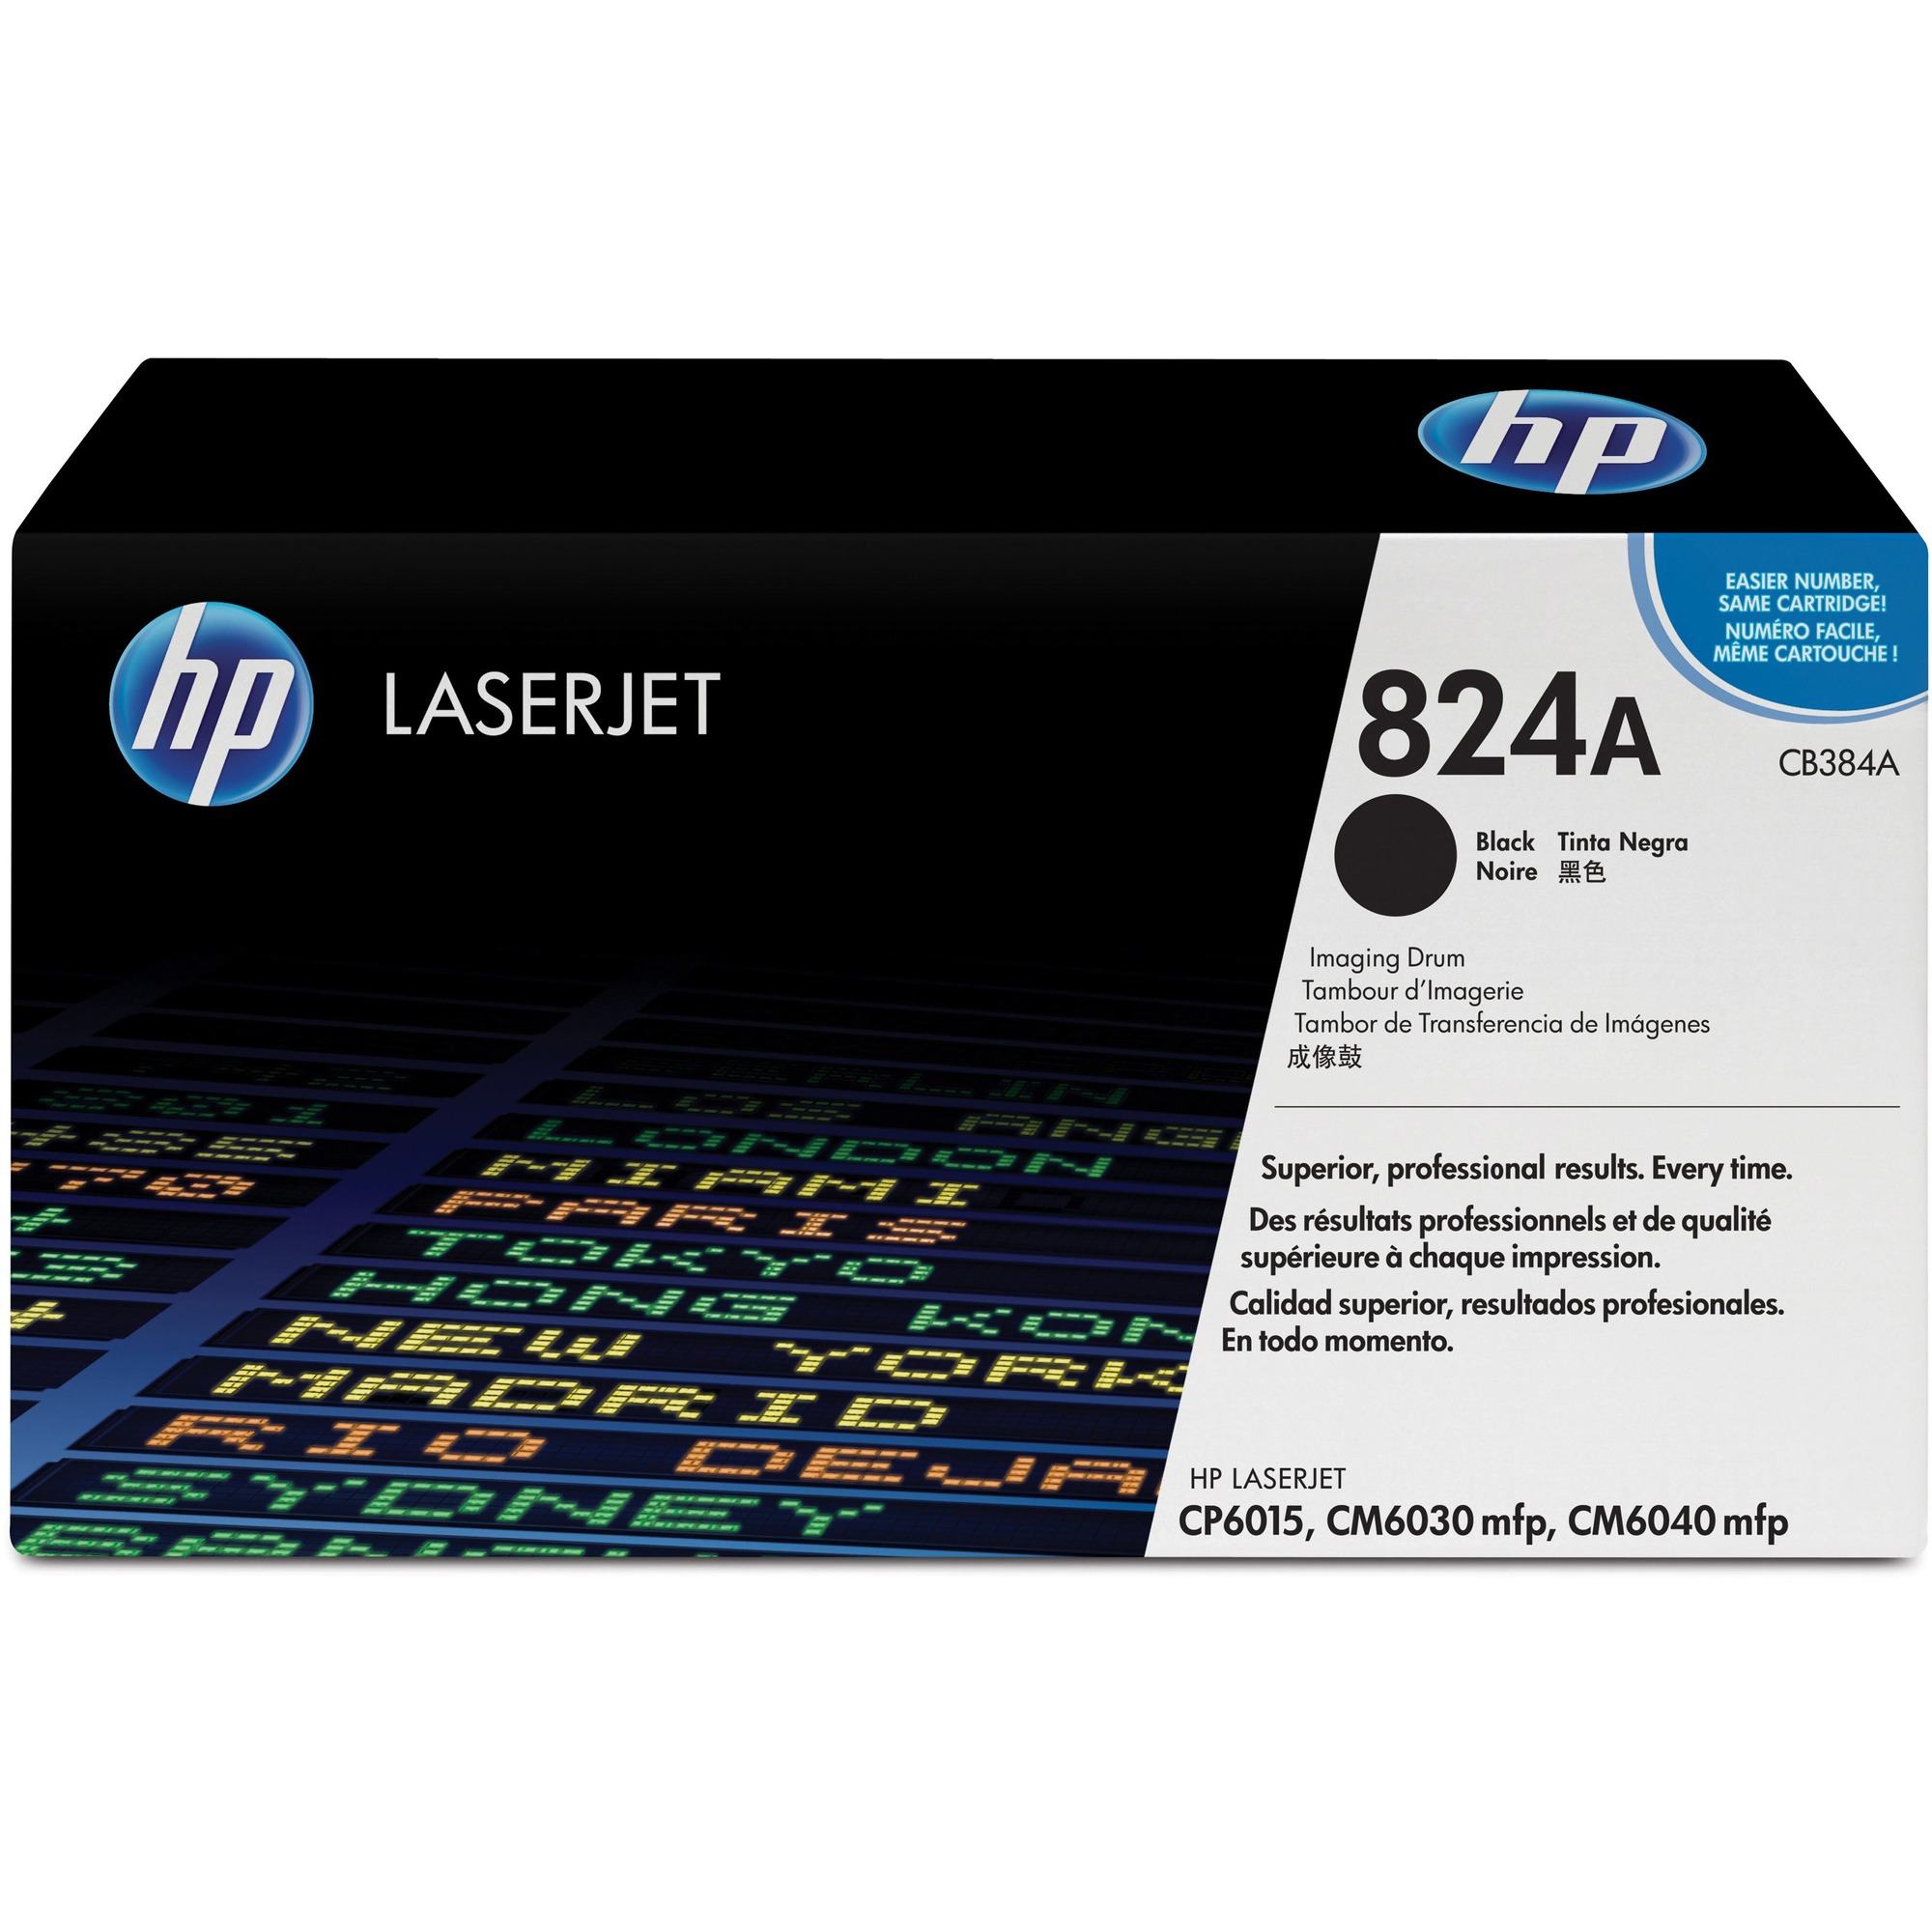 HP CB384A Laser Imaging Drum - Black